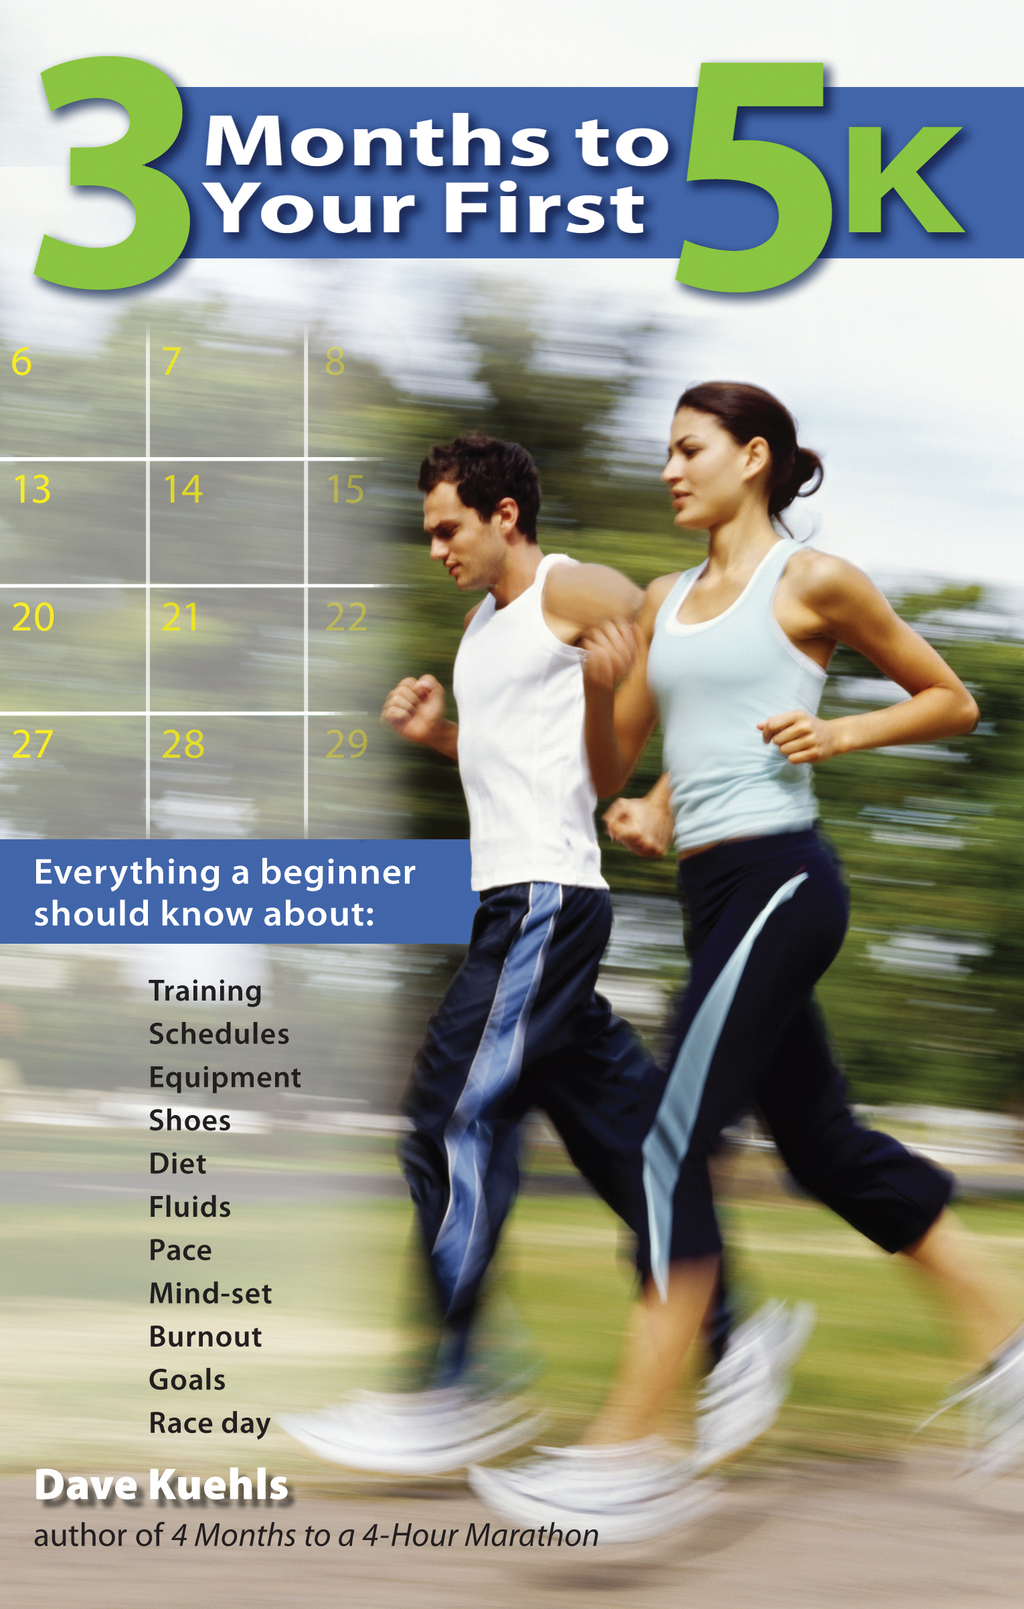 3 Months to Your First 5k By: Dave Kuehls